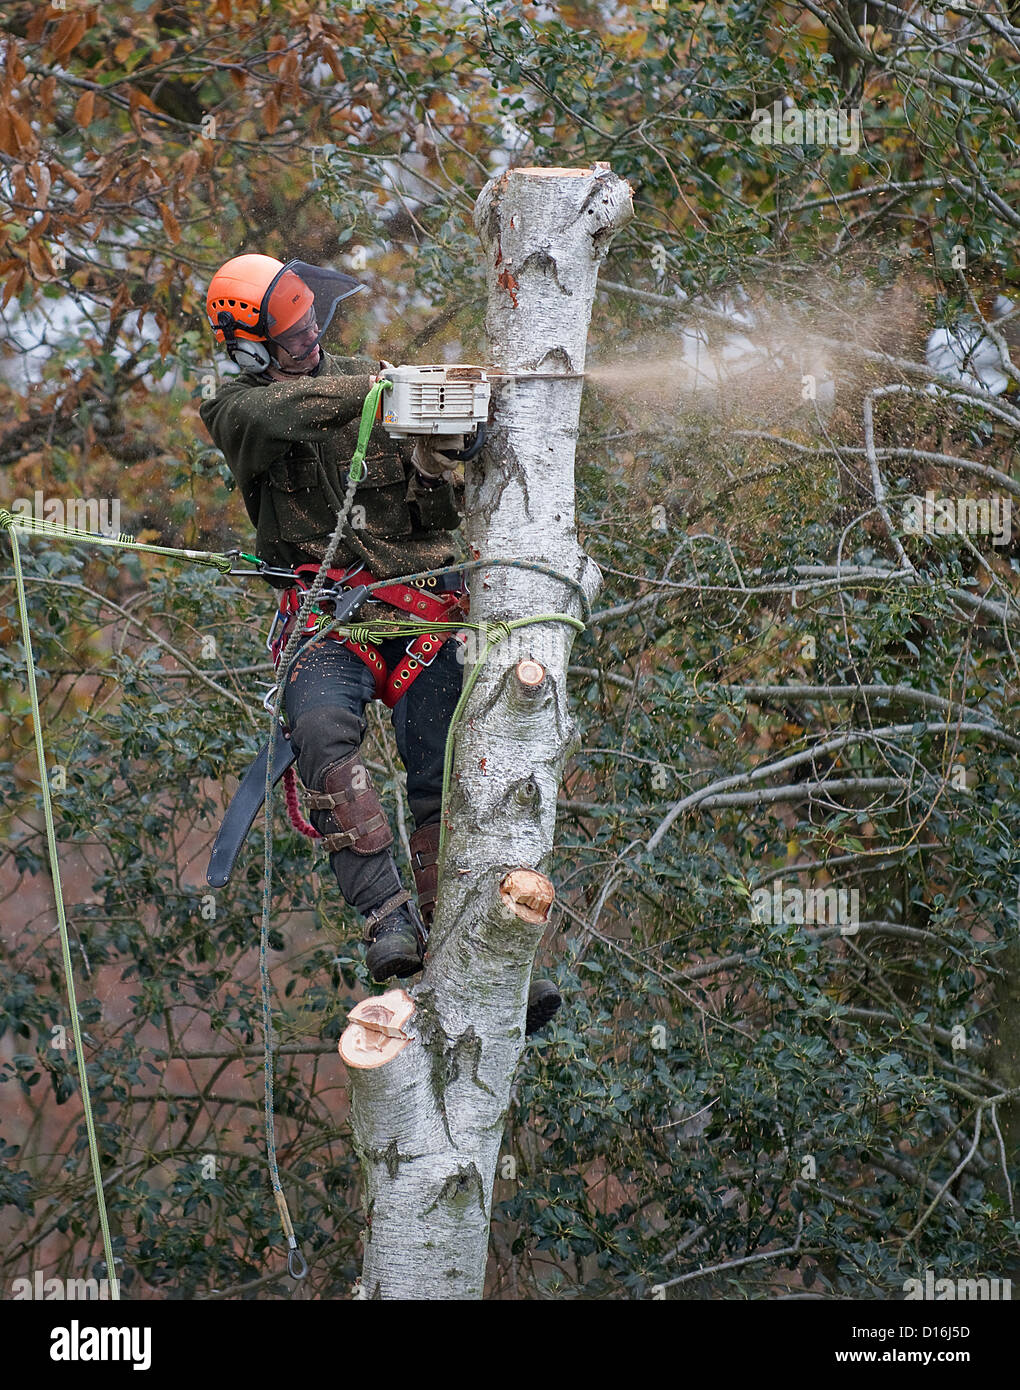 Silver Birch Tree being Felled by a Man with a Chain Saw -1 Stock Photo